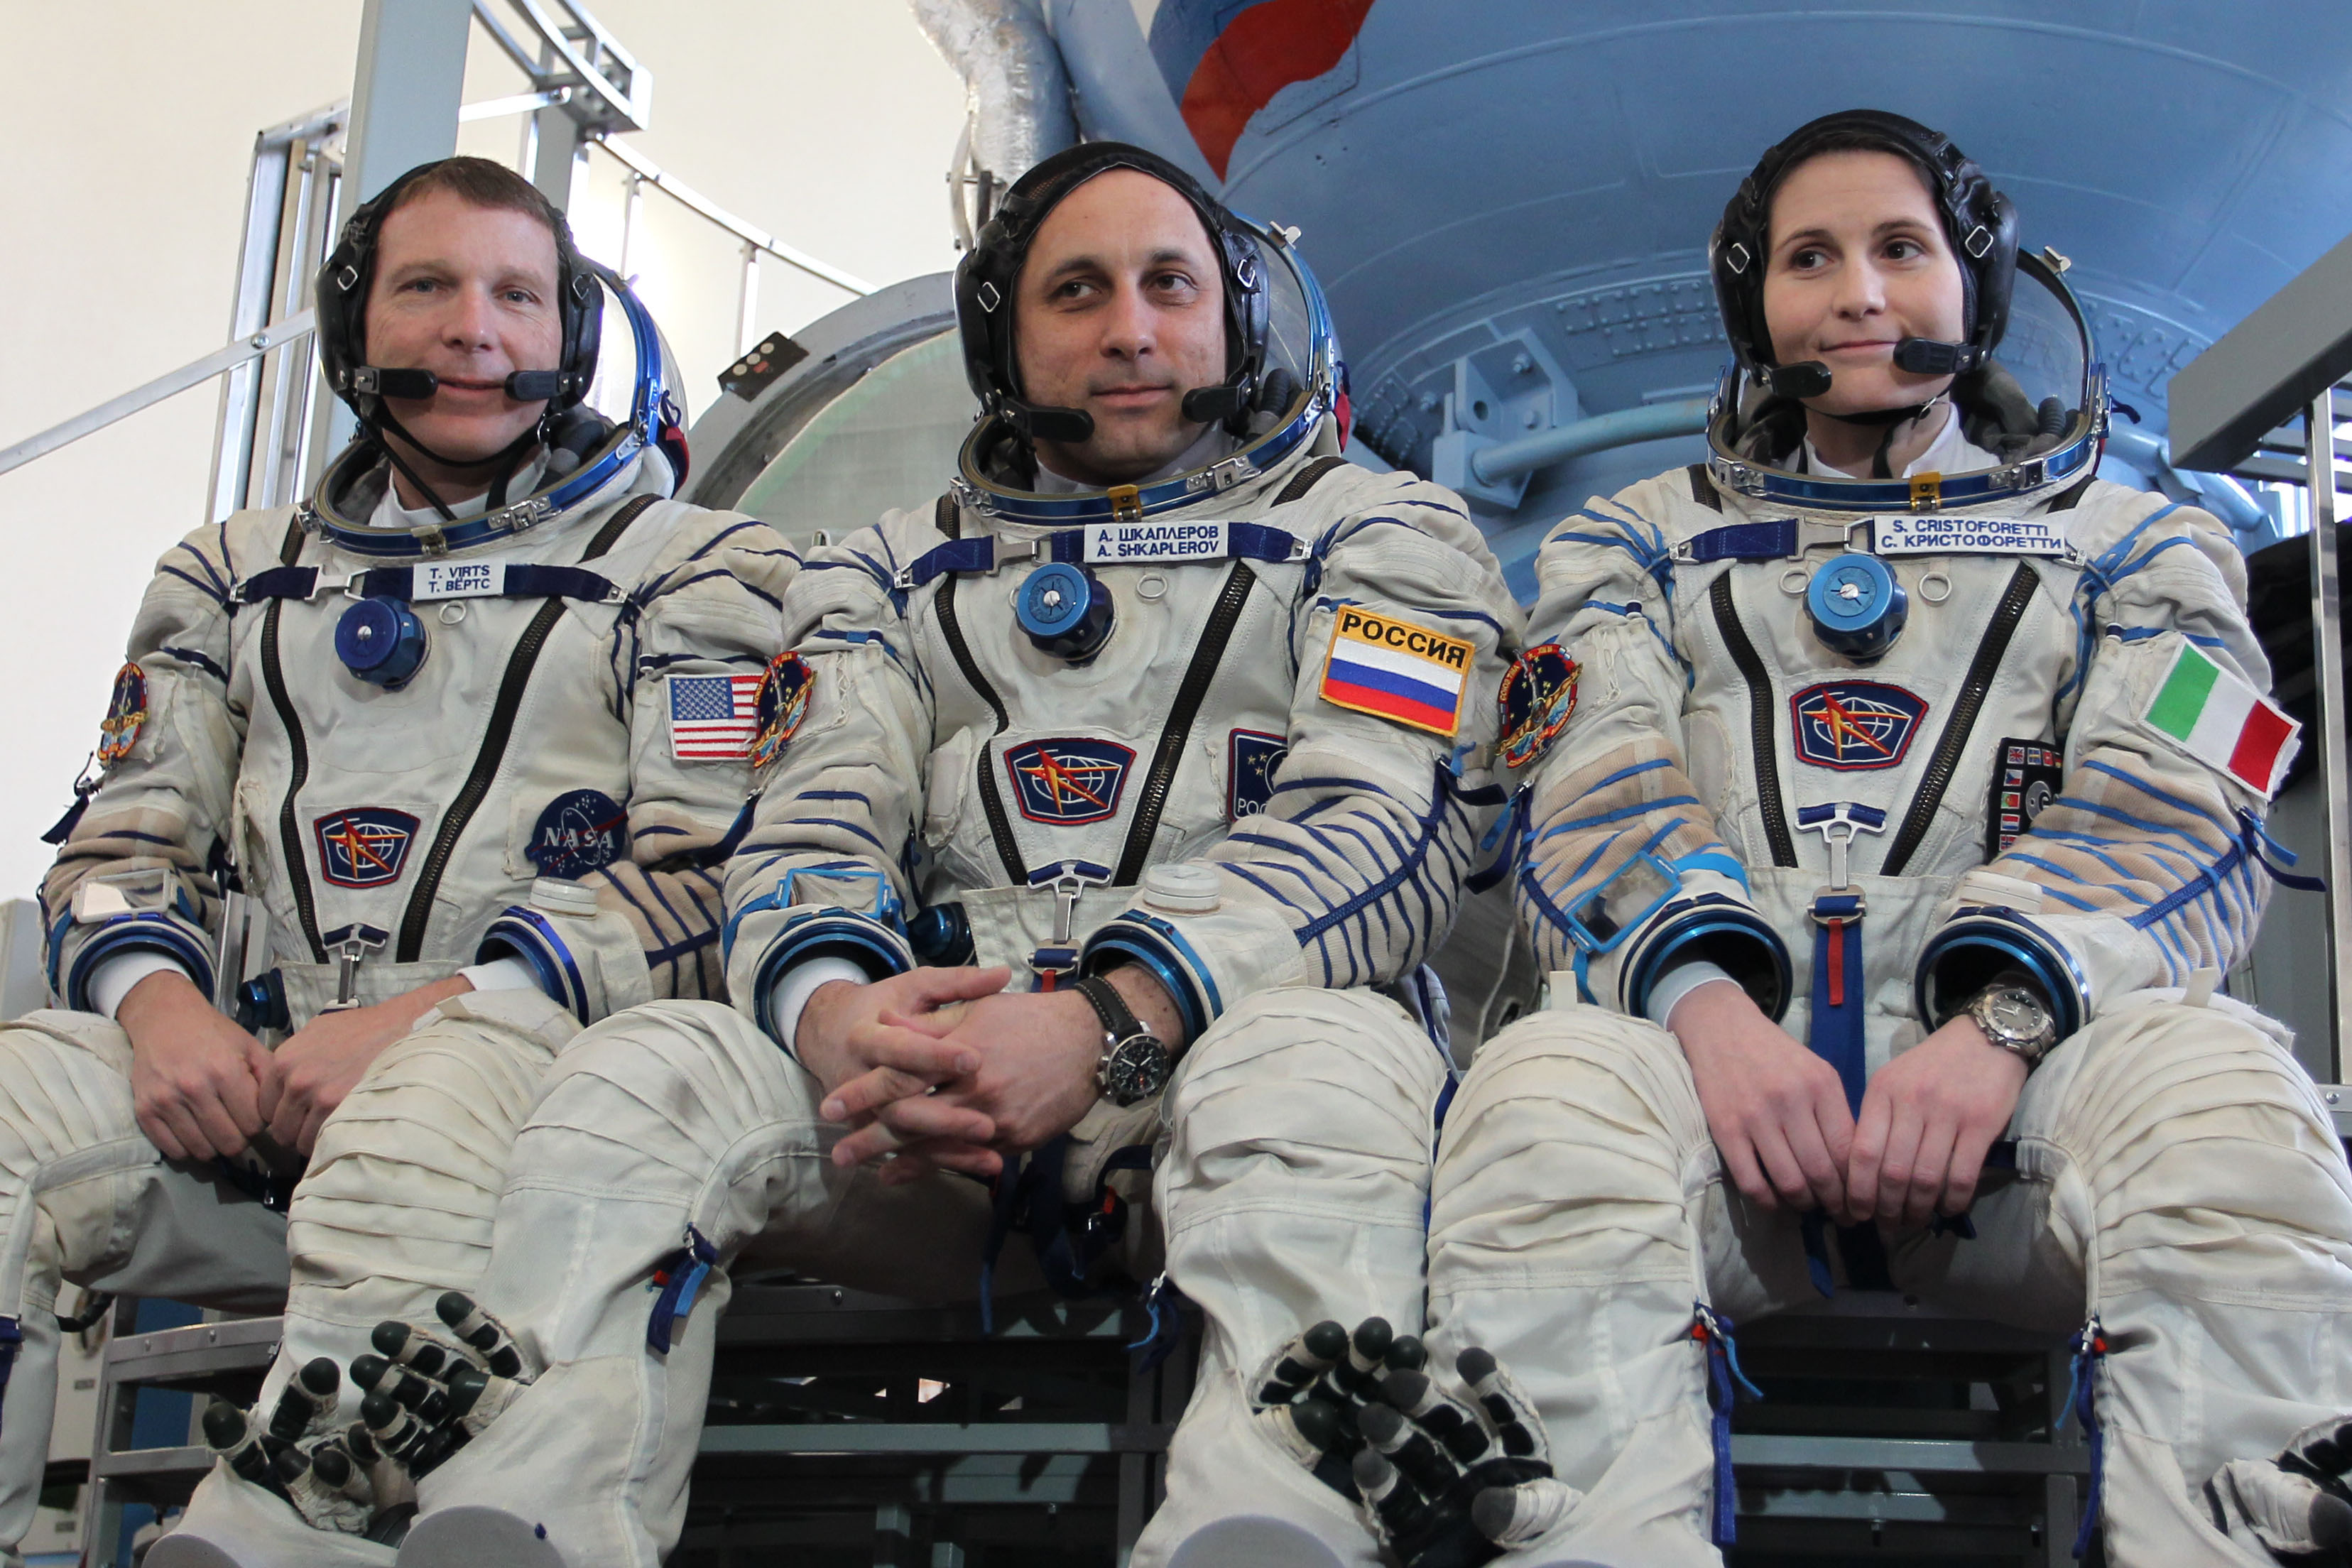 Lancement Soyouz FG / Soyouz TMA-15M - 23 novembre 2014 Expedition_40_backup_crew_members_in_front_of_the_Soyuz_TMA_spacecraft_mock-up_in_Star_City,_Russia